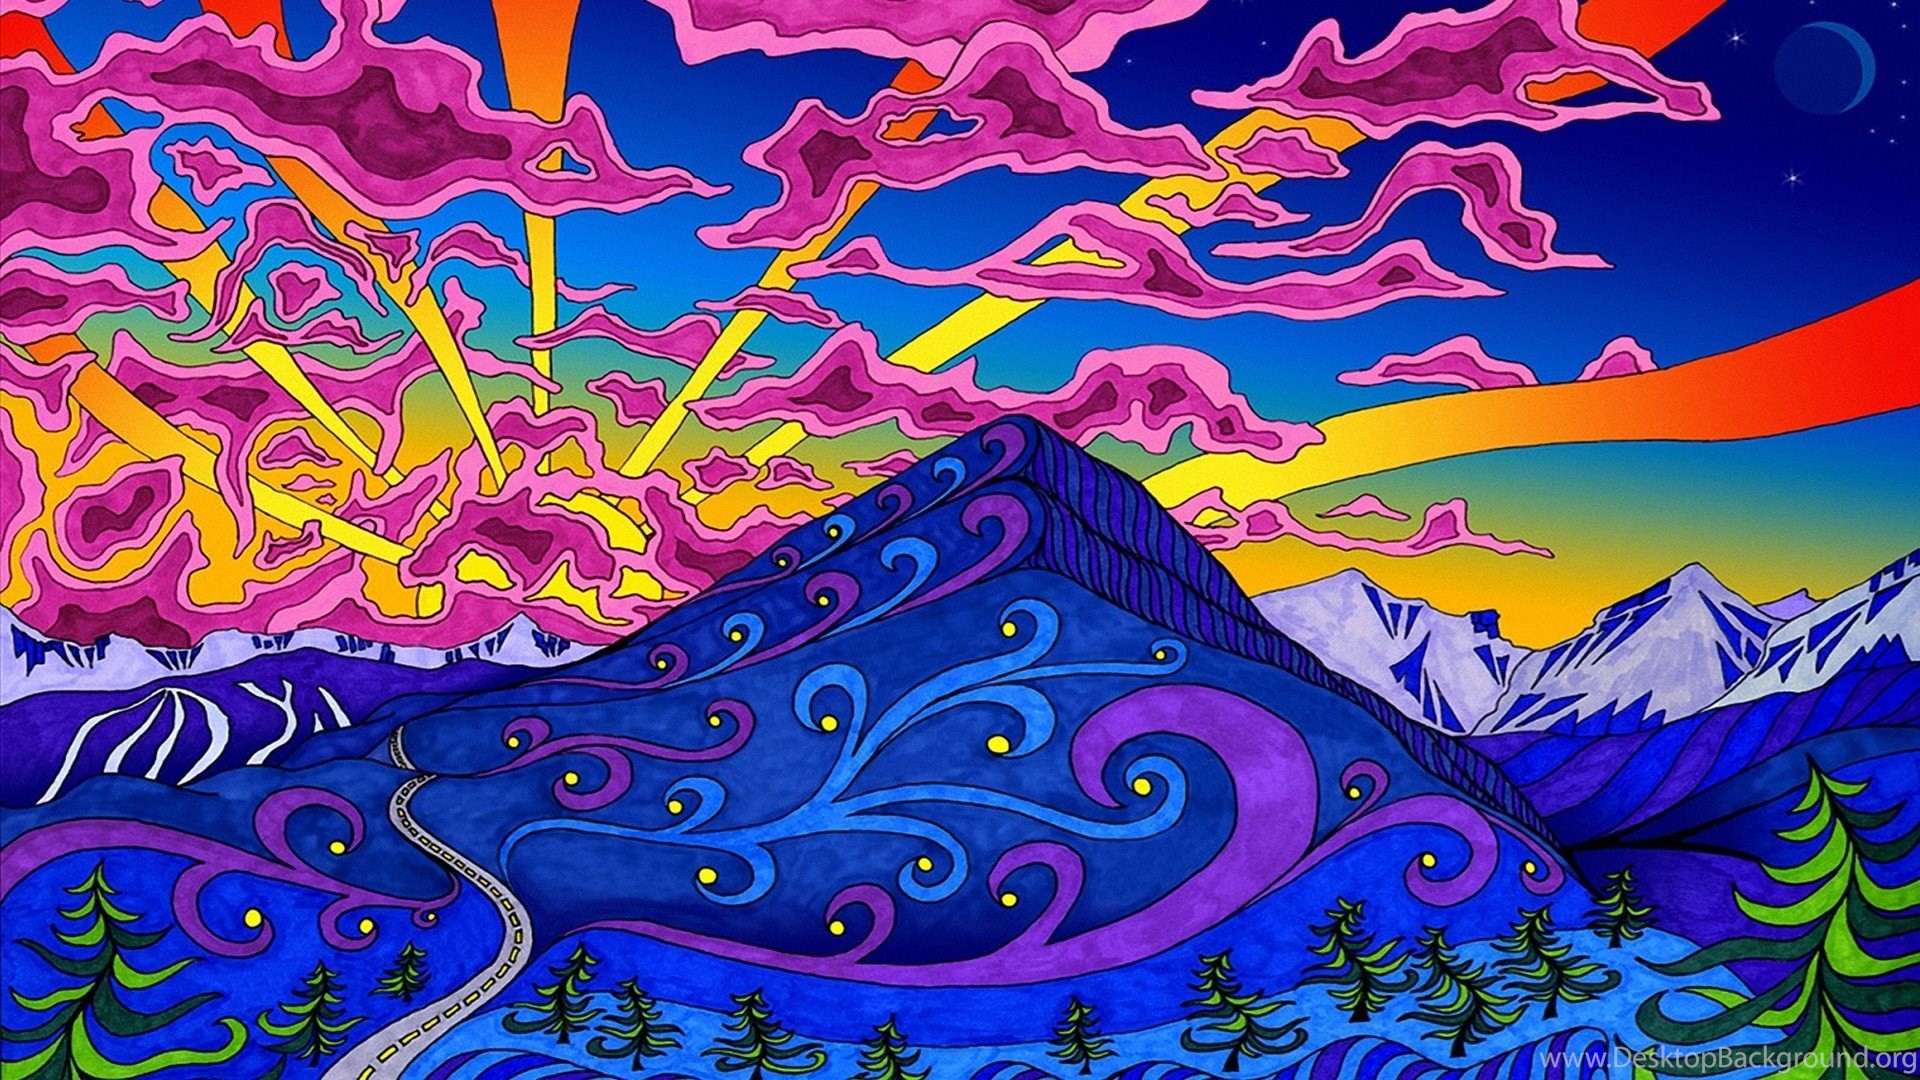 Full Hd Trippy Wallpapers New Wallpapers